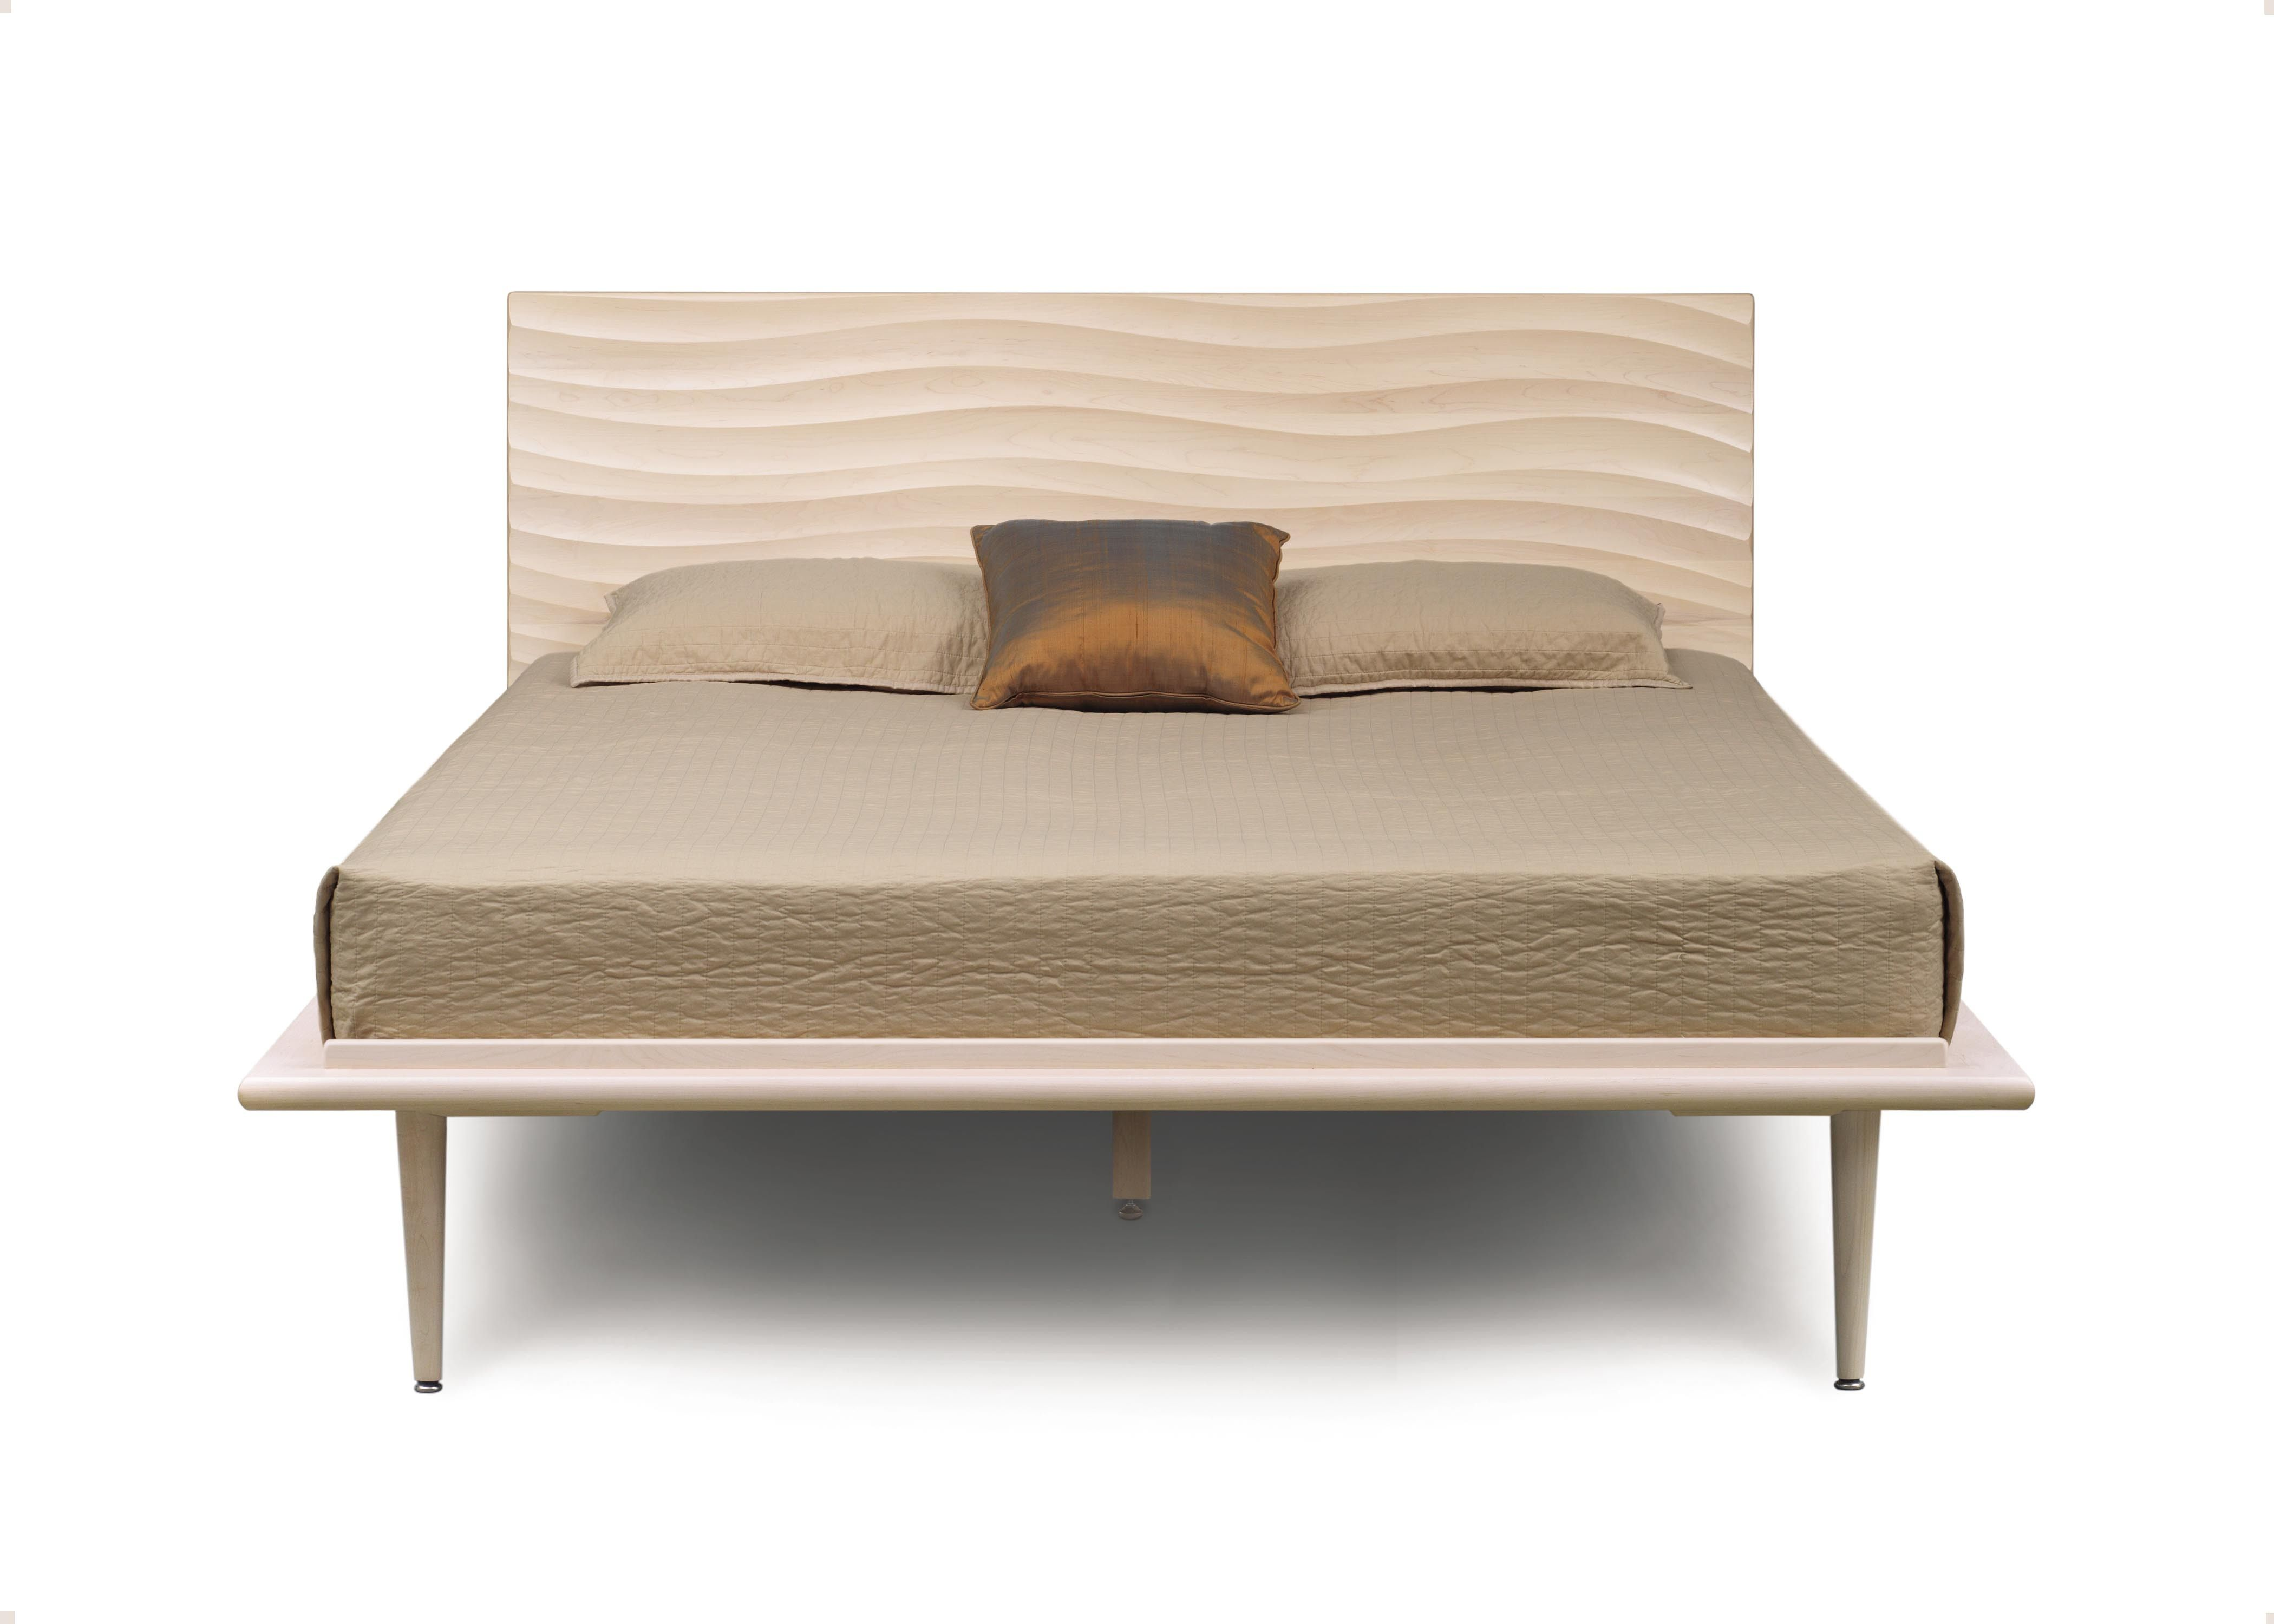 the wave bed is designed for use with a mattress only and is